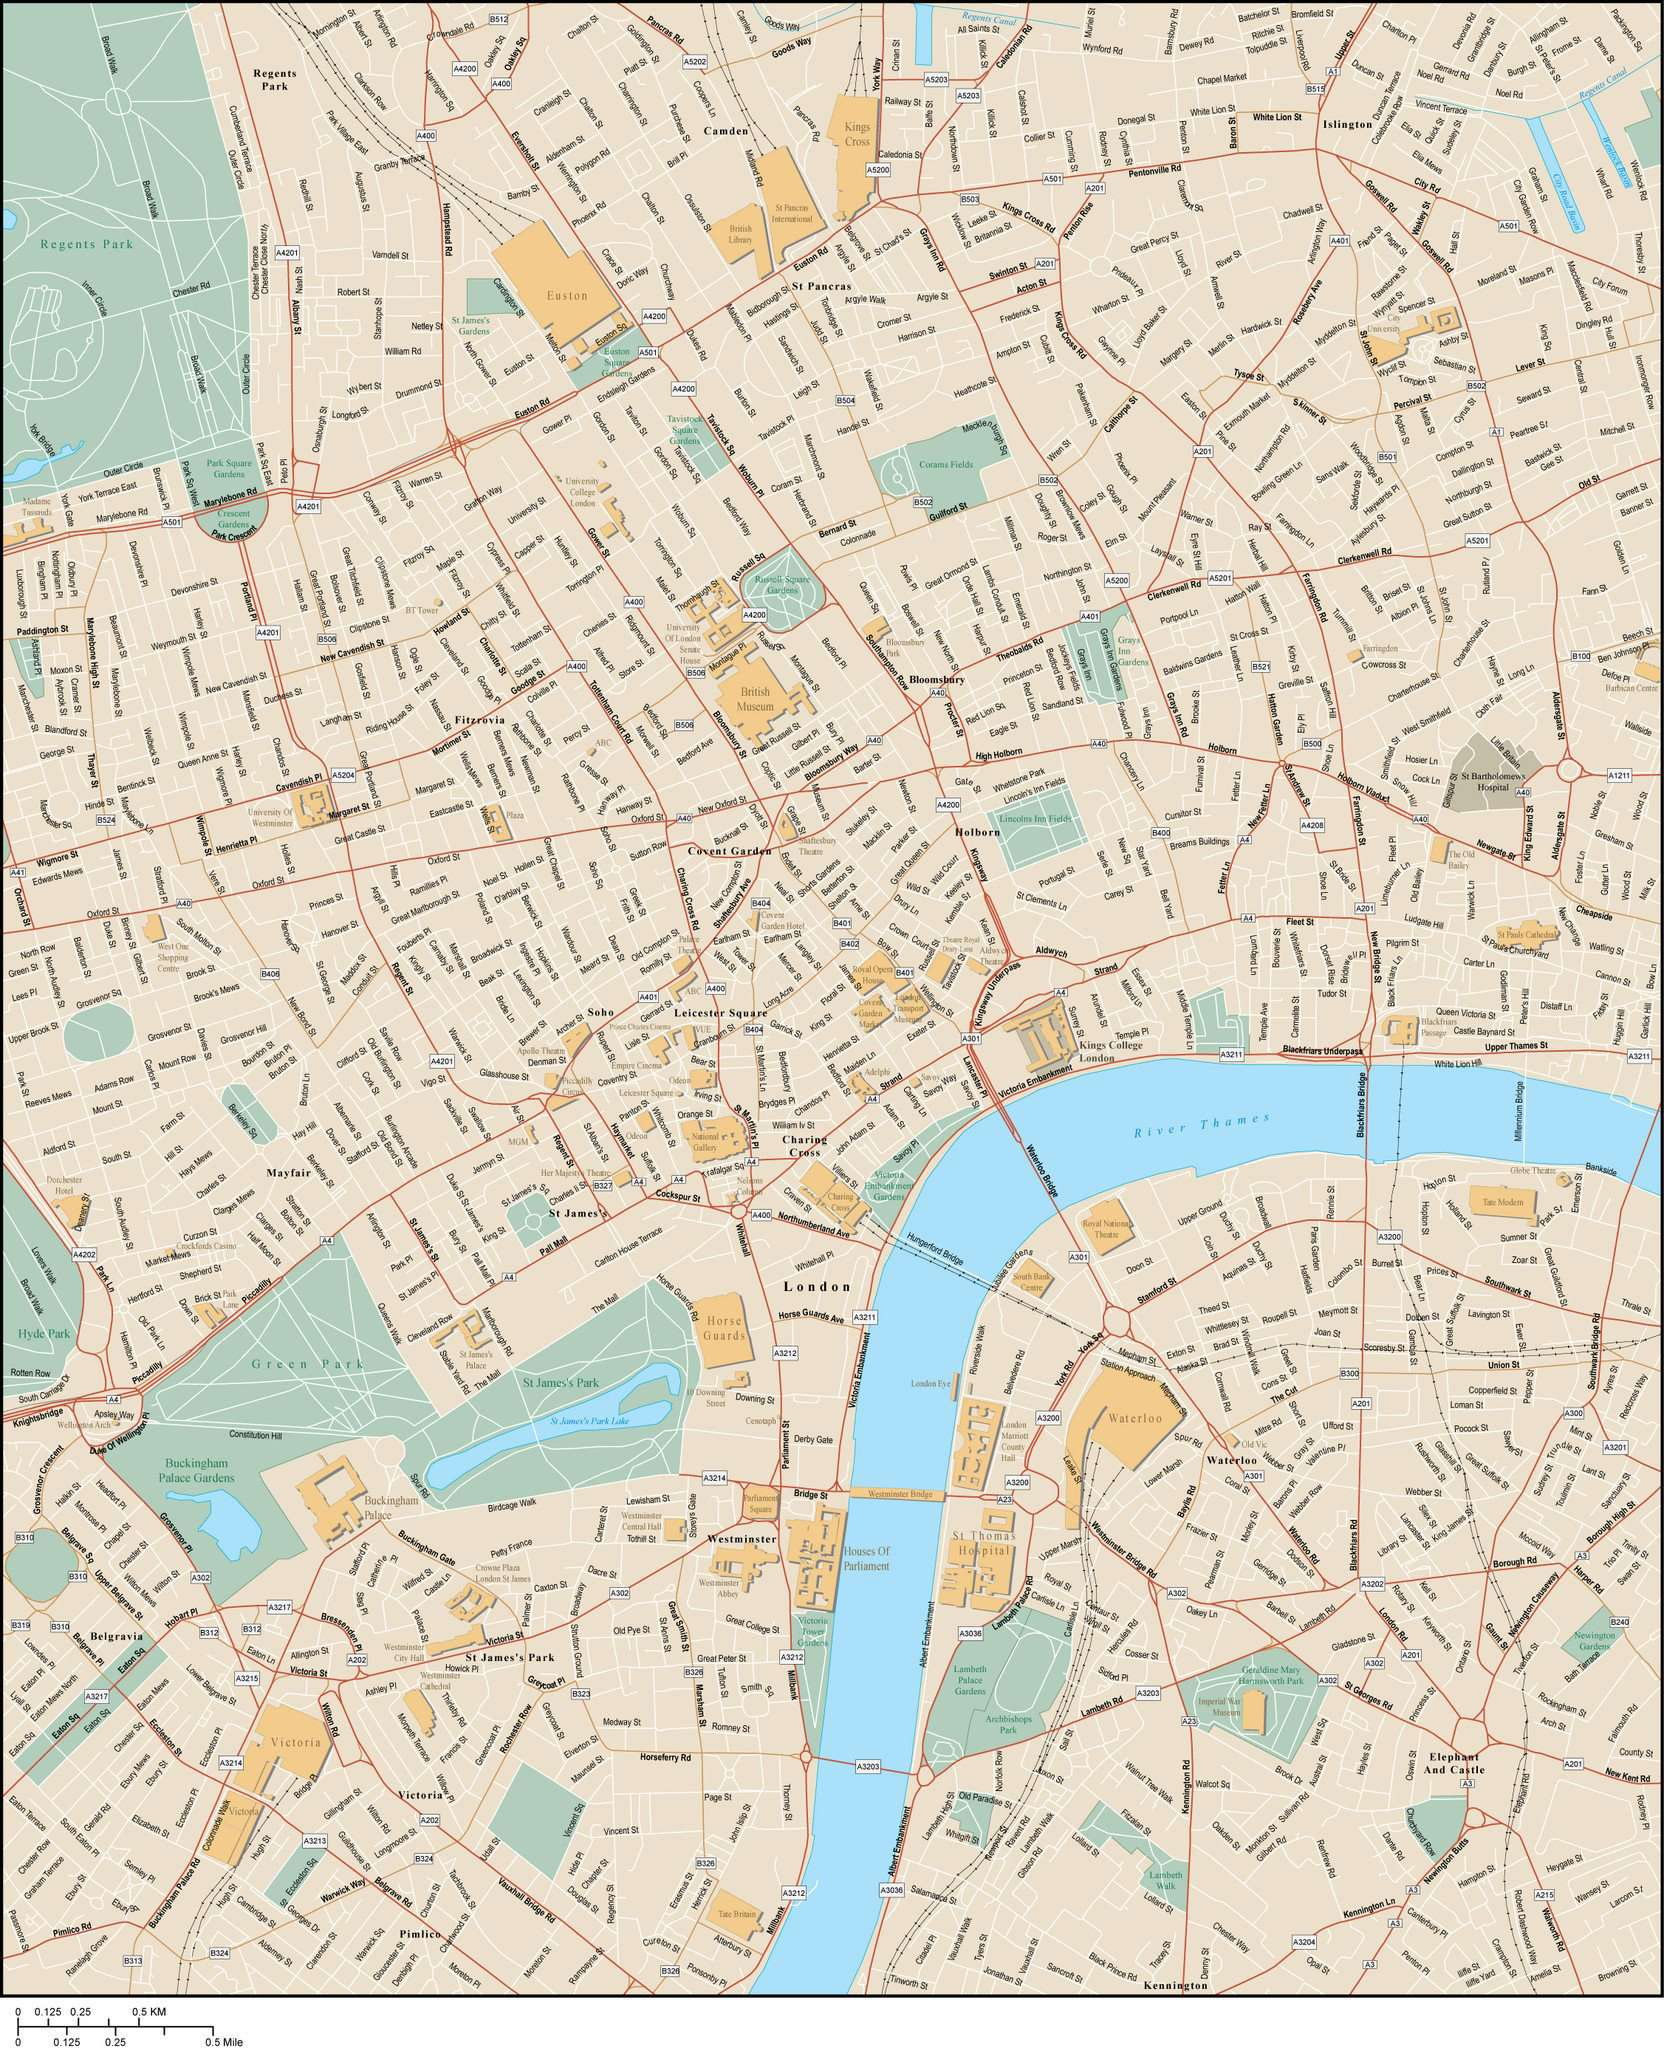 Map City London.London England Map City Center With All Local Streets